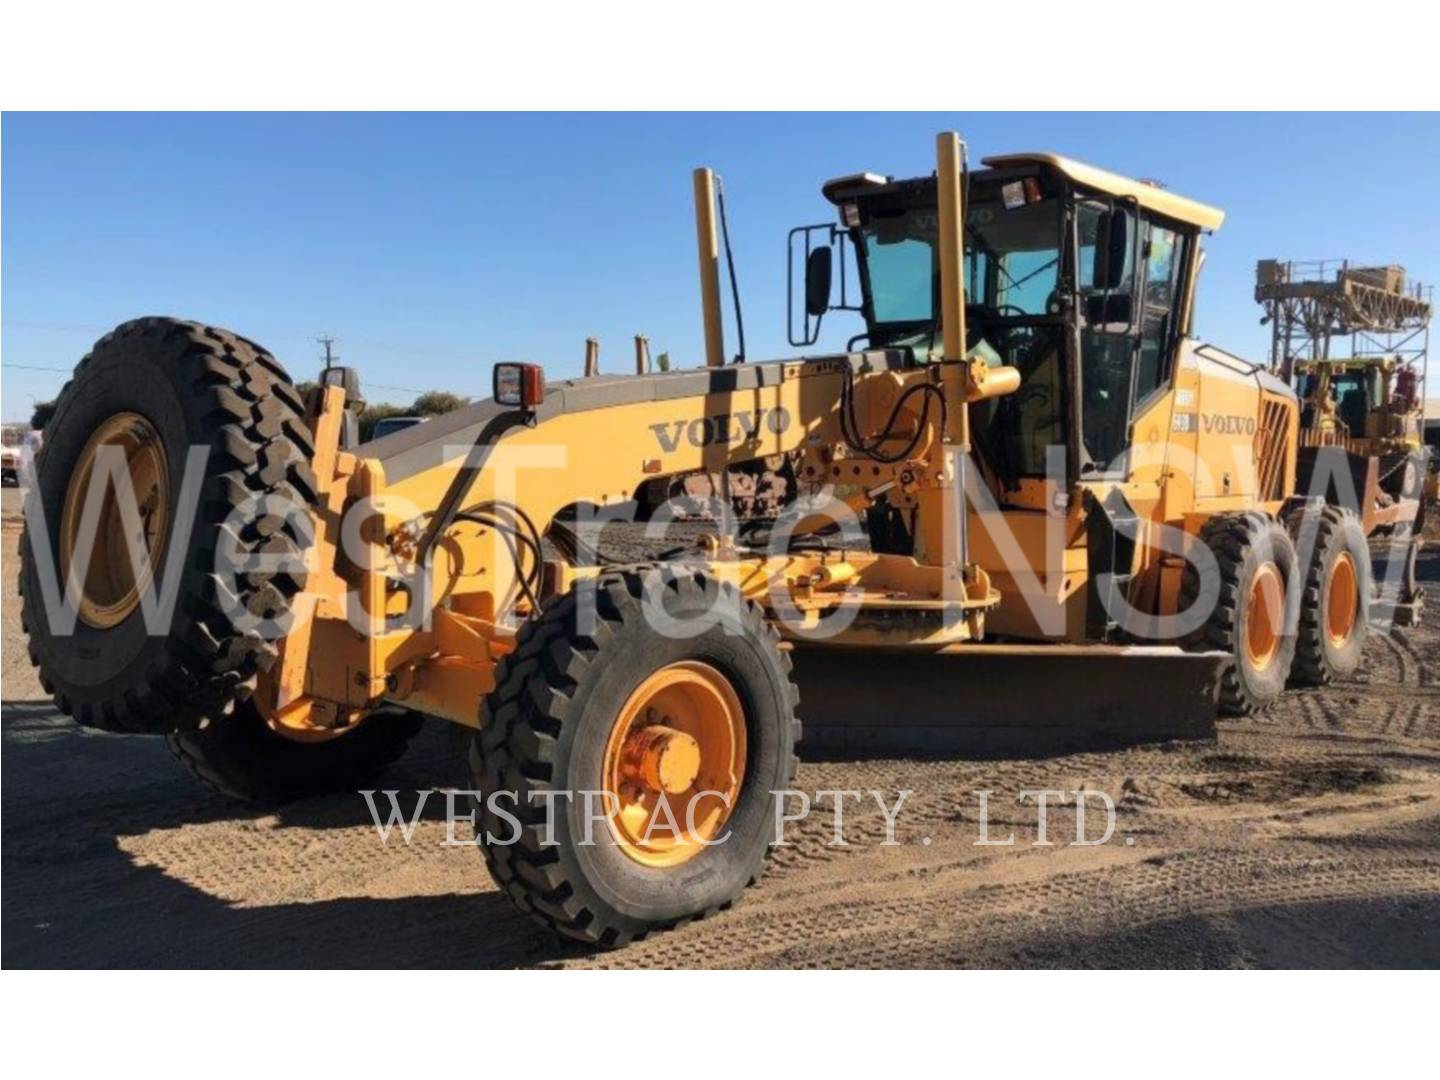 Used machinery cat used used equipment for sale westrac volvo g930 fandeluxe Images